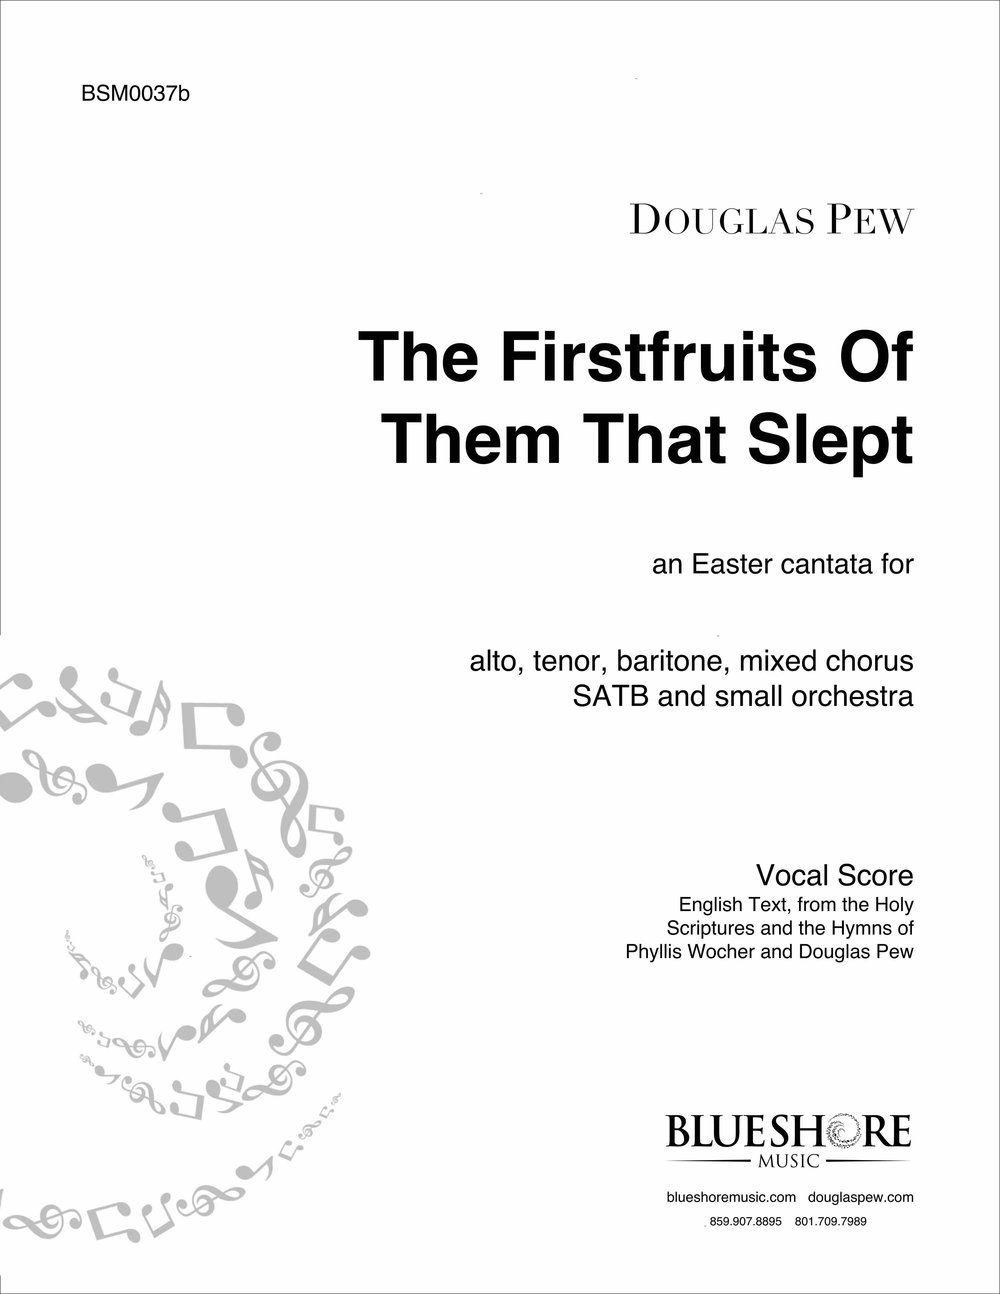 The Firstfruits of Them That Slept , Easter Cantata for Soloists, SATB, and Small Ensemble